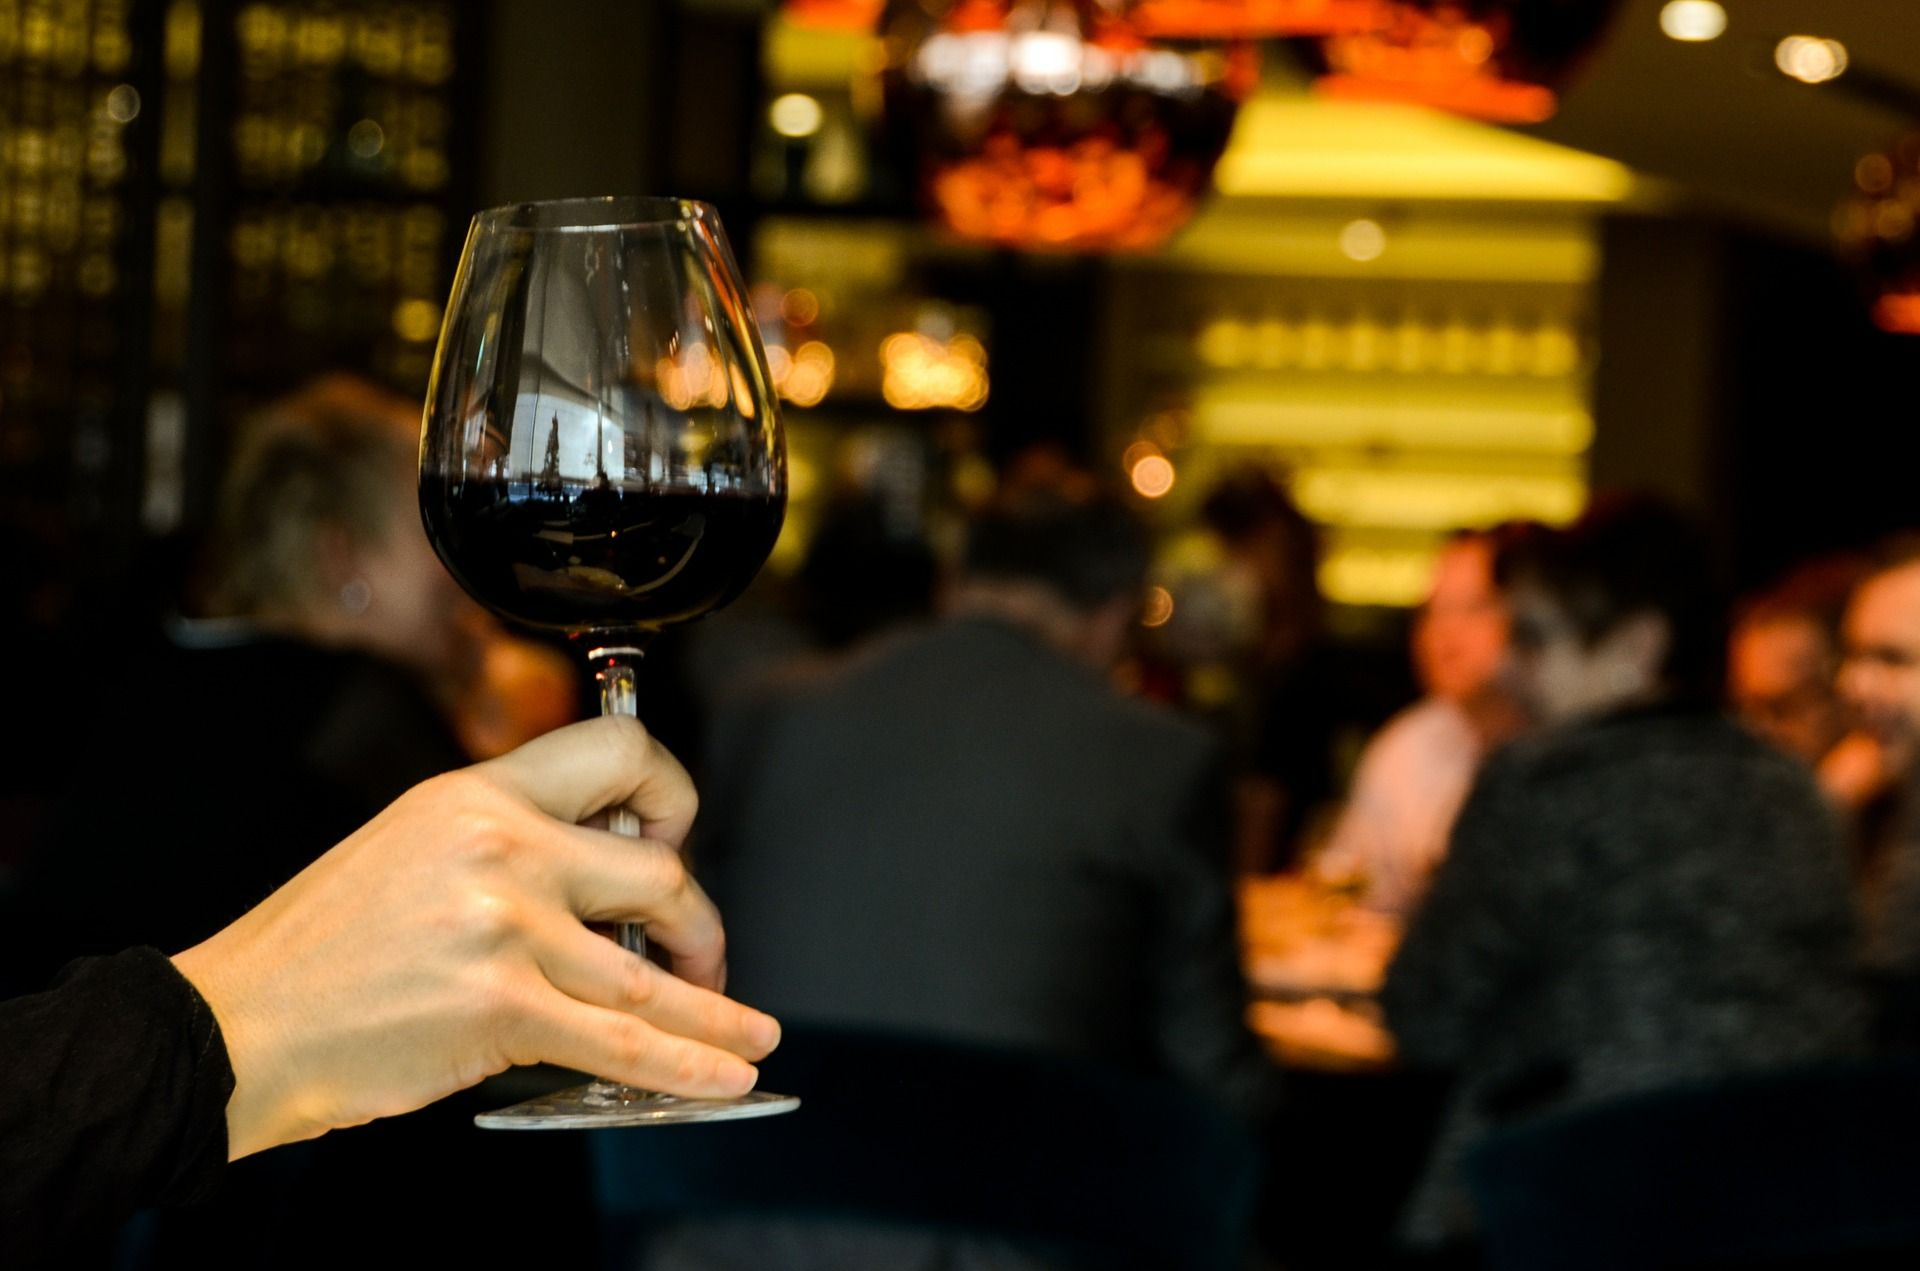 Hand holding a wine glass with red wine; WSET Level 2 exam